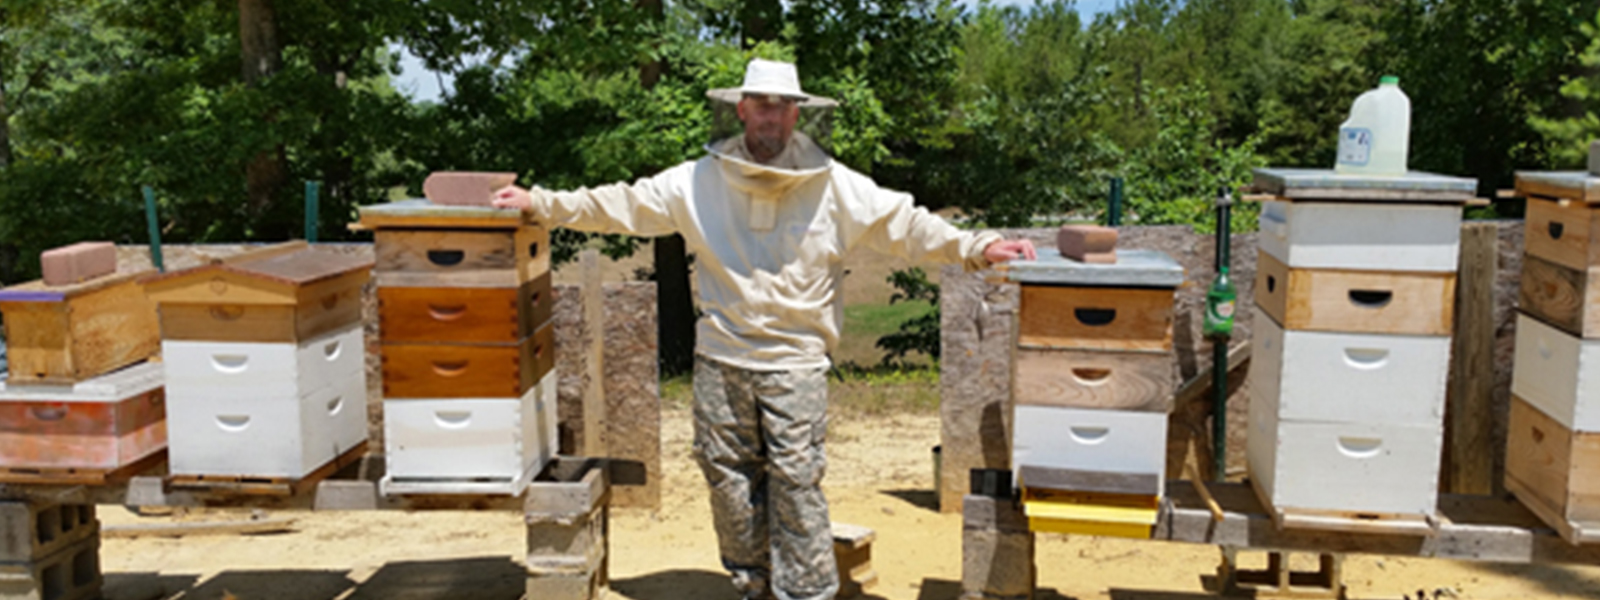 Rob Bell with the bee hives